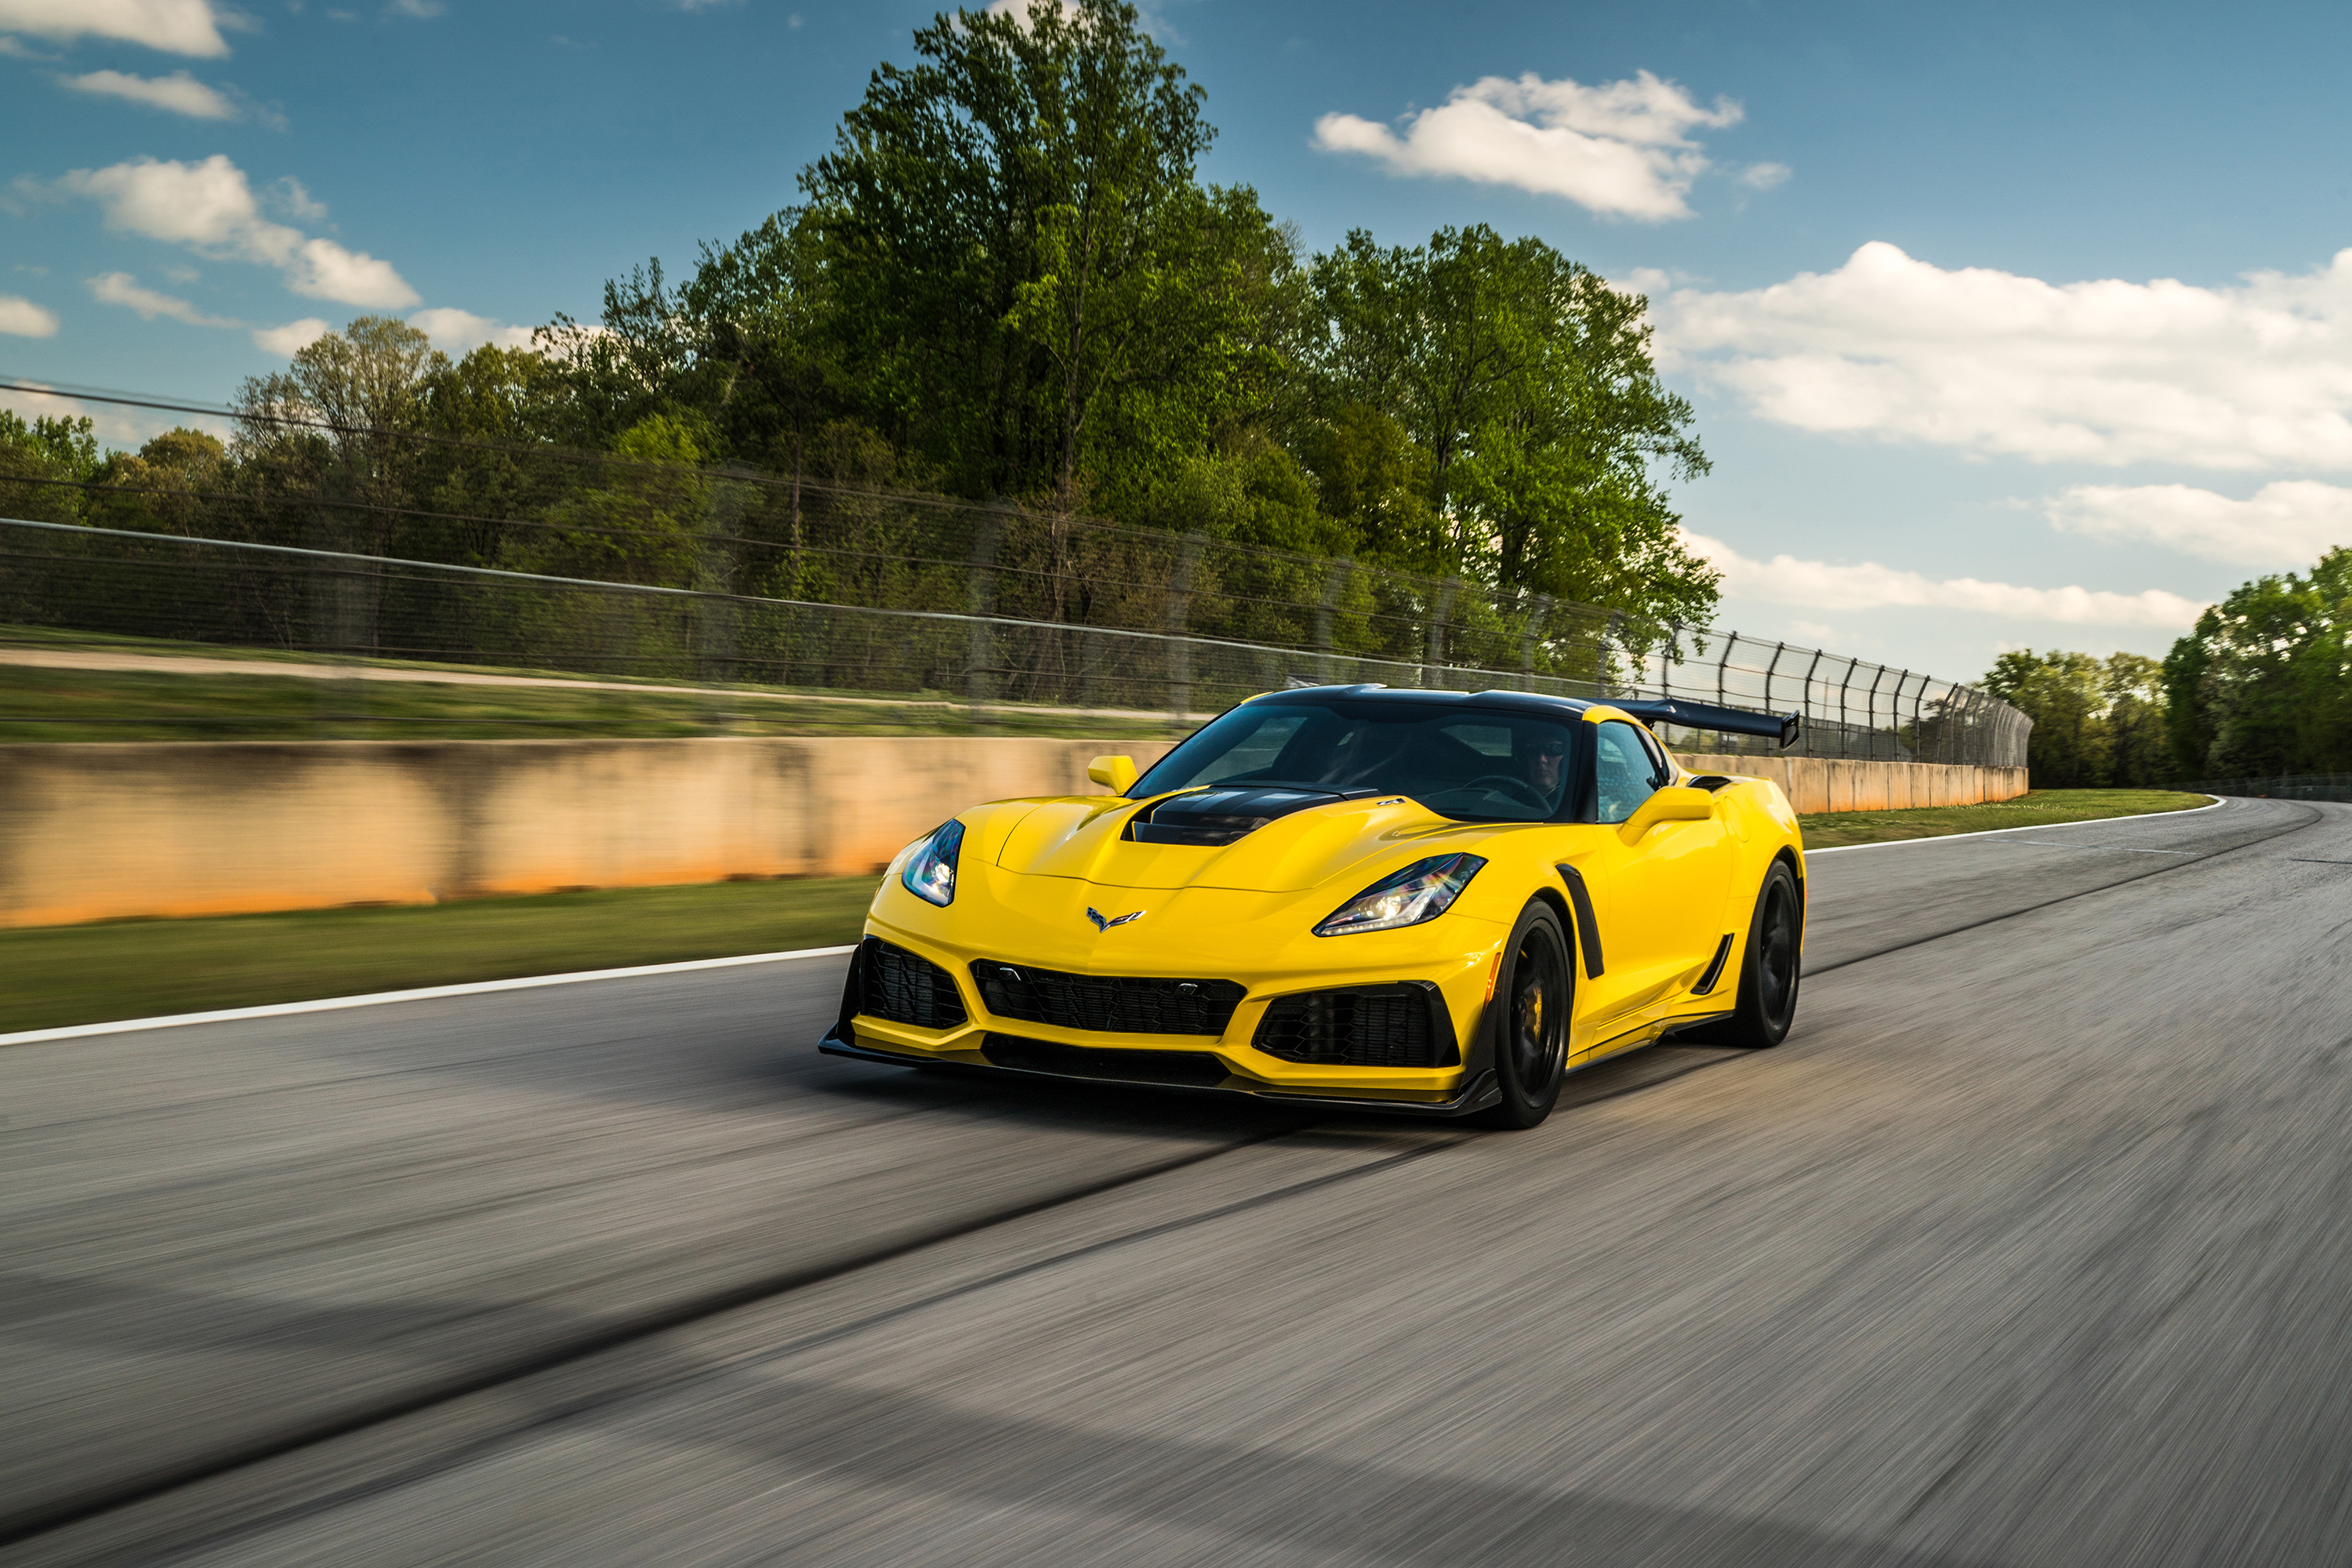 2019 chevrolet corvette zr1 yellow track front